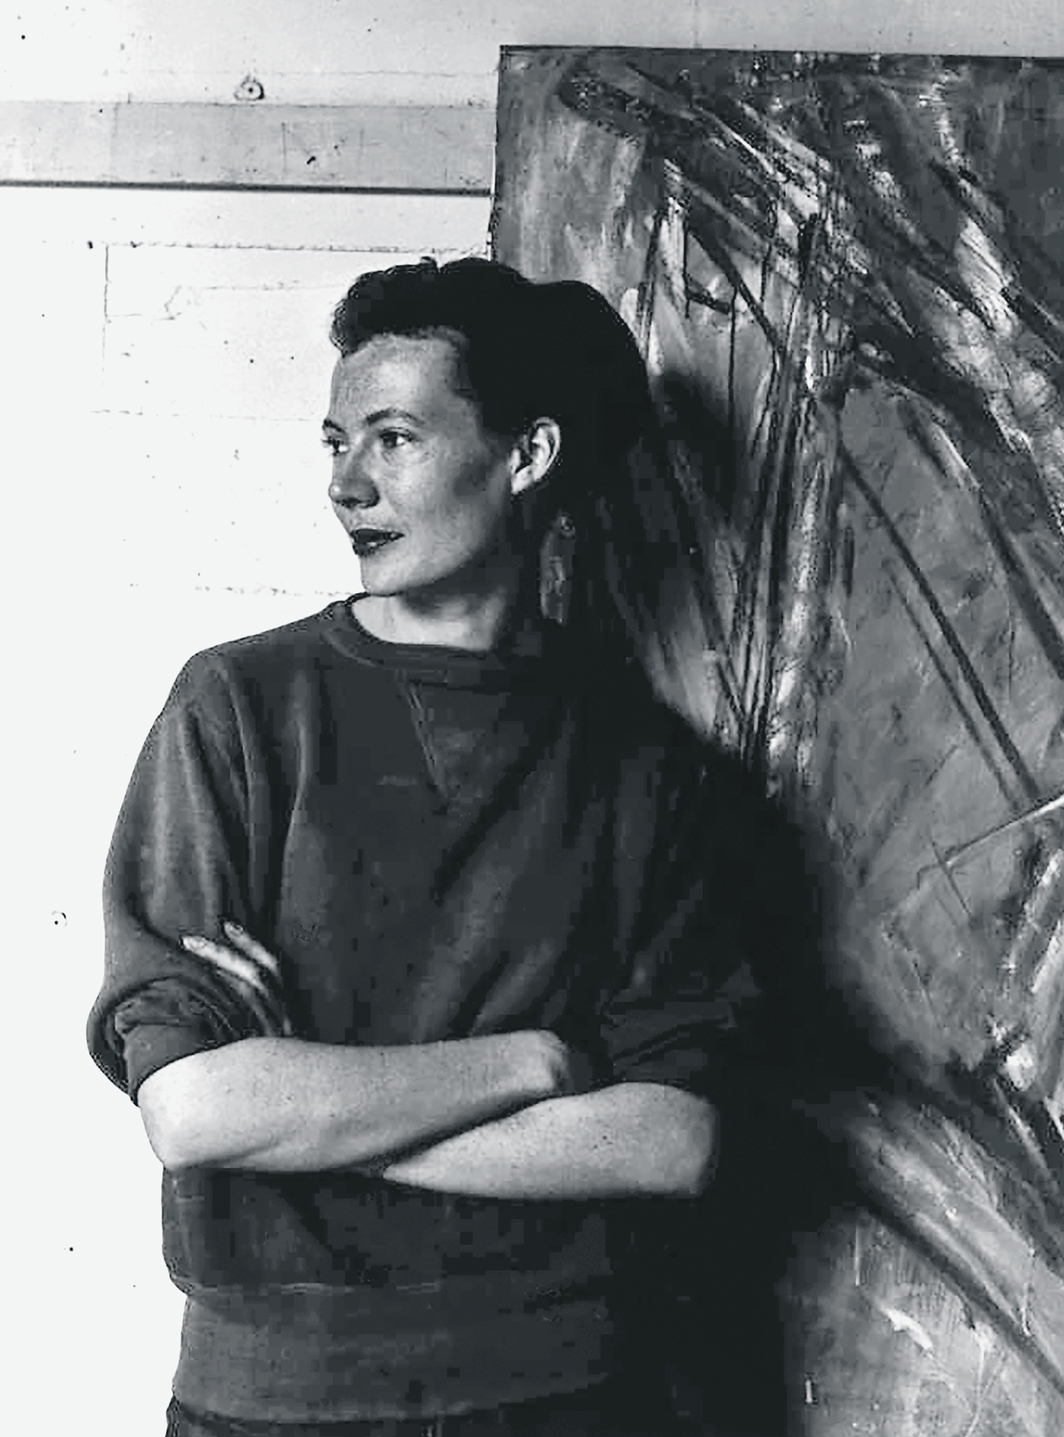 Deborah Remington, San Francisco Art Institute, April 1955. © Deborah Remington Charitable Trust for the Visual Arts/Licensed by VAGA at Artists Rights Society (ARS), New York.